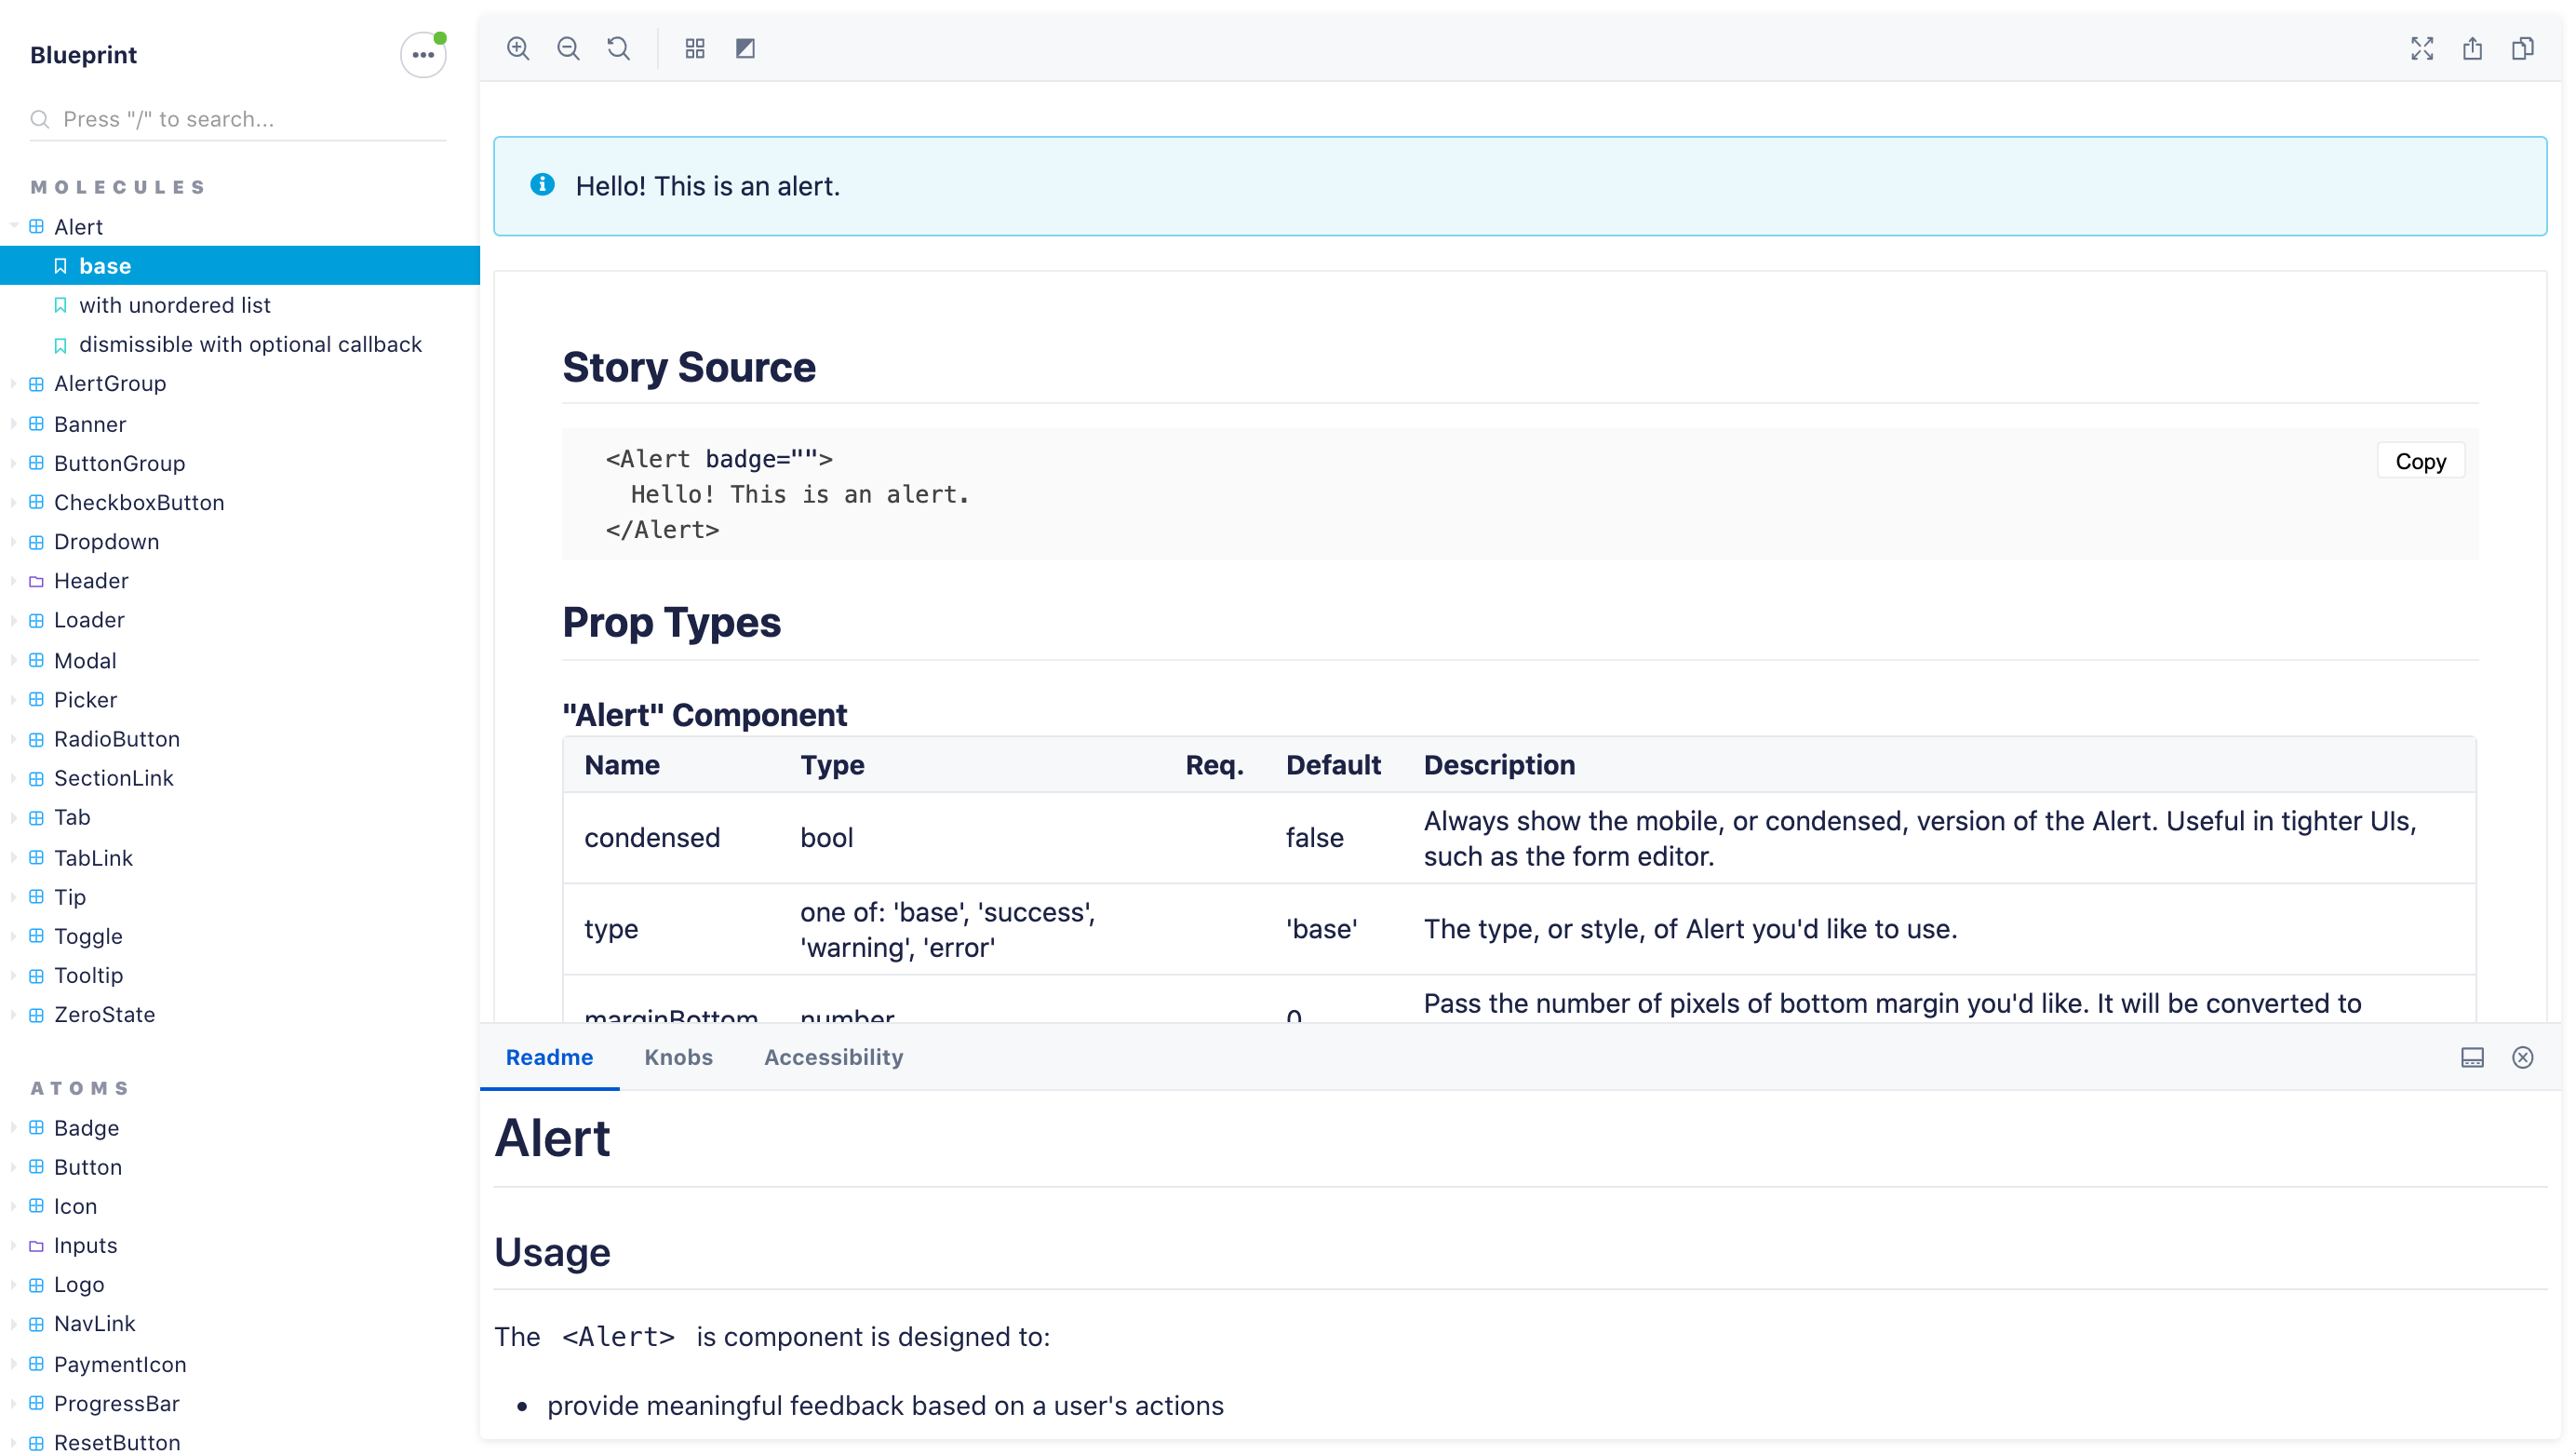 a screenshot of Storybook, featuring the Alert component